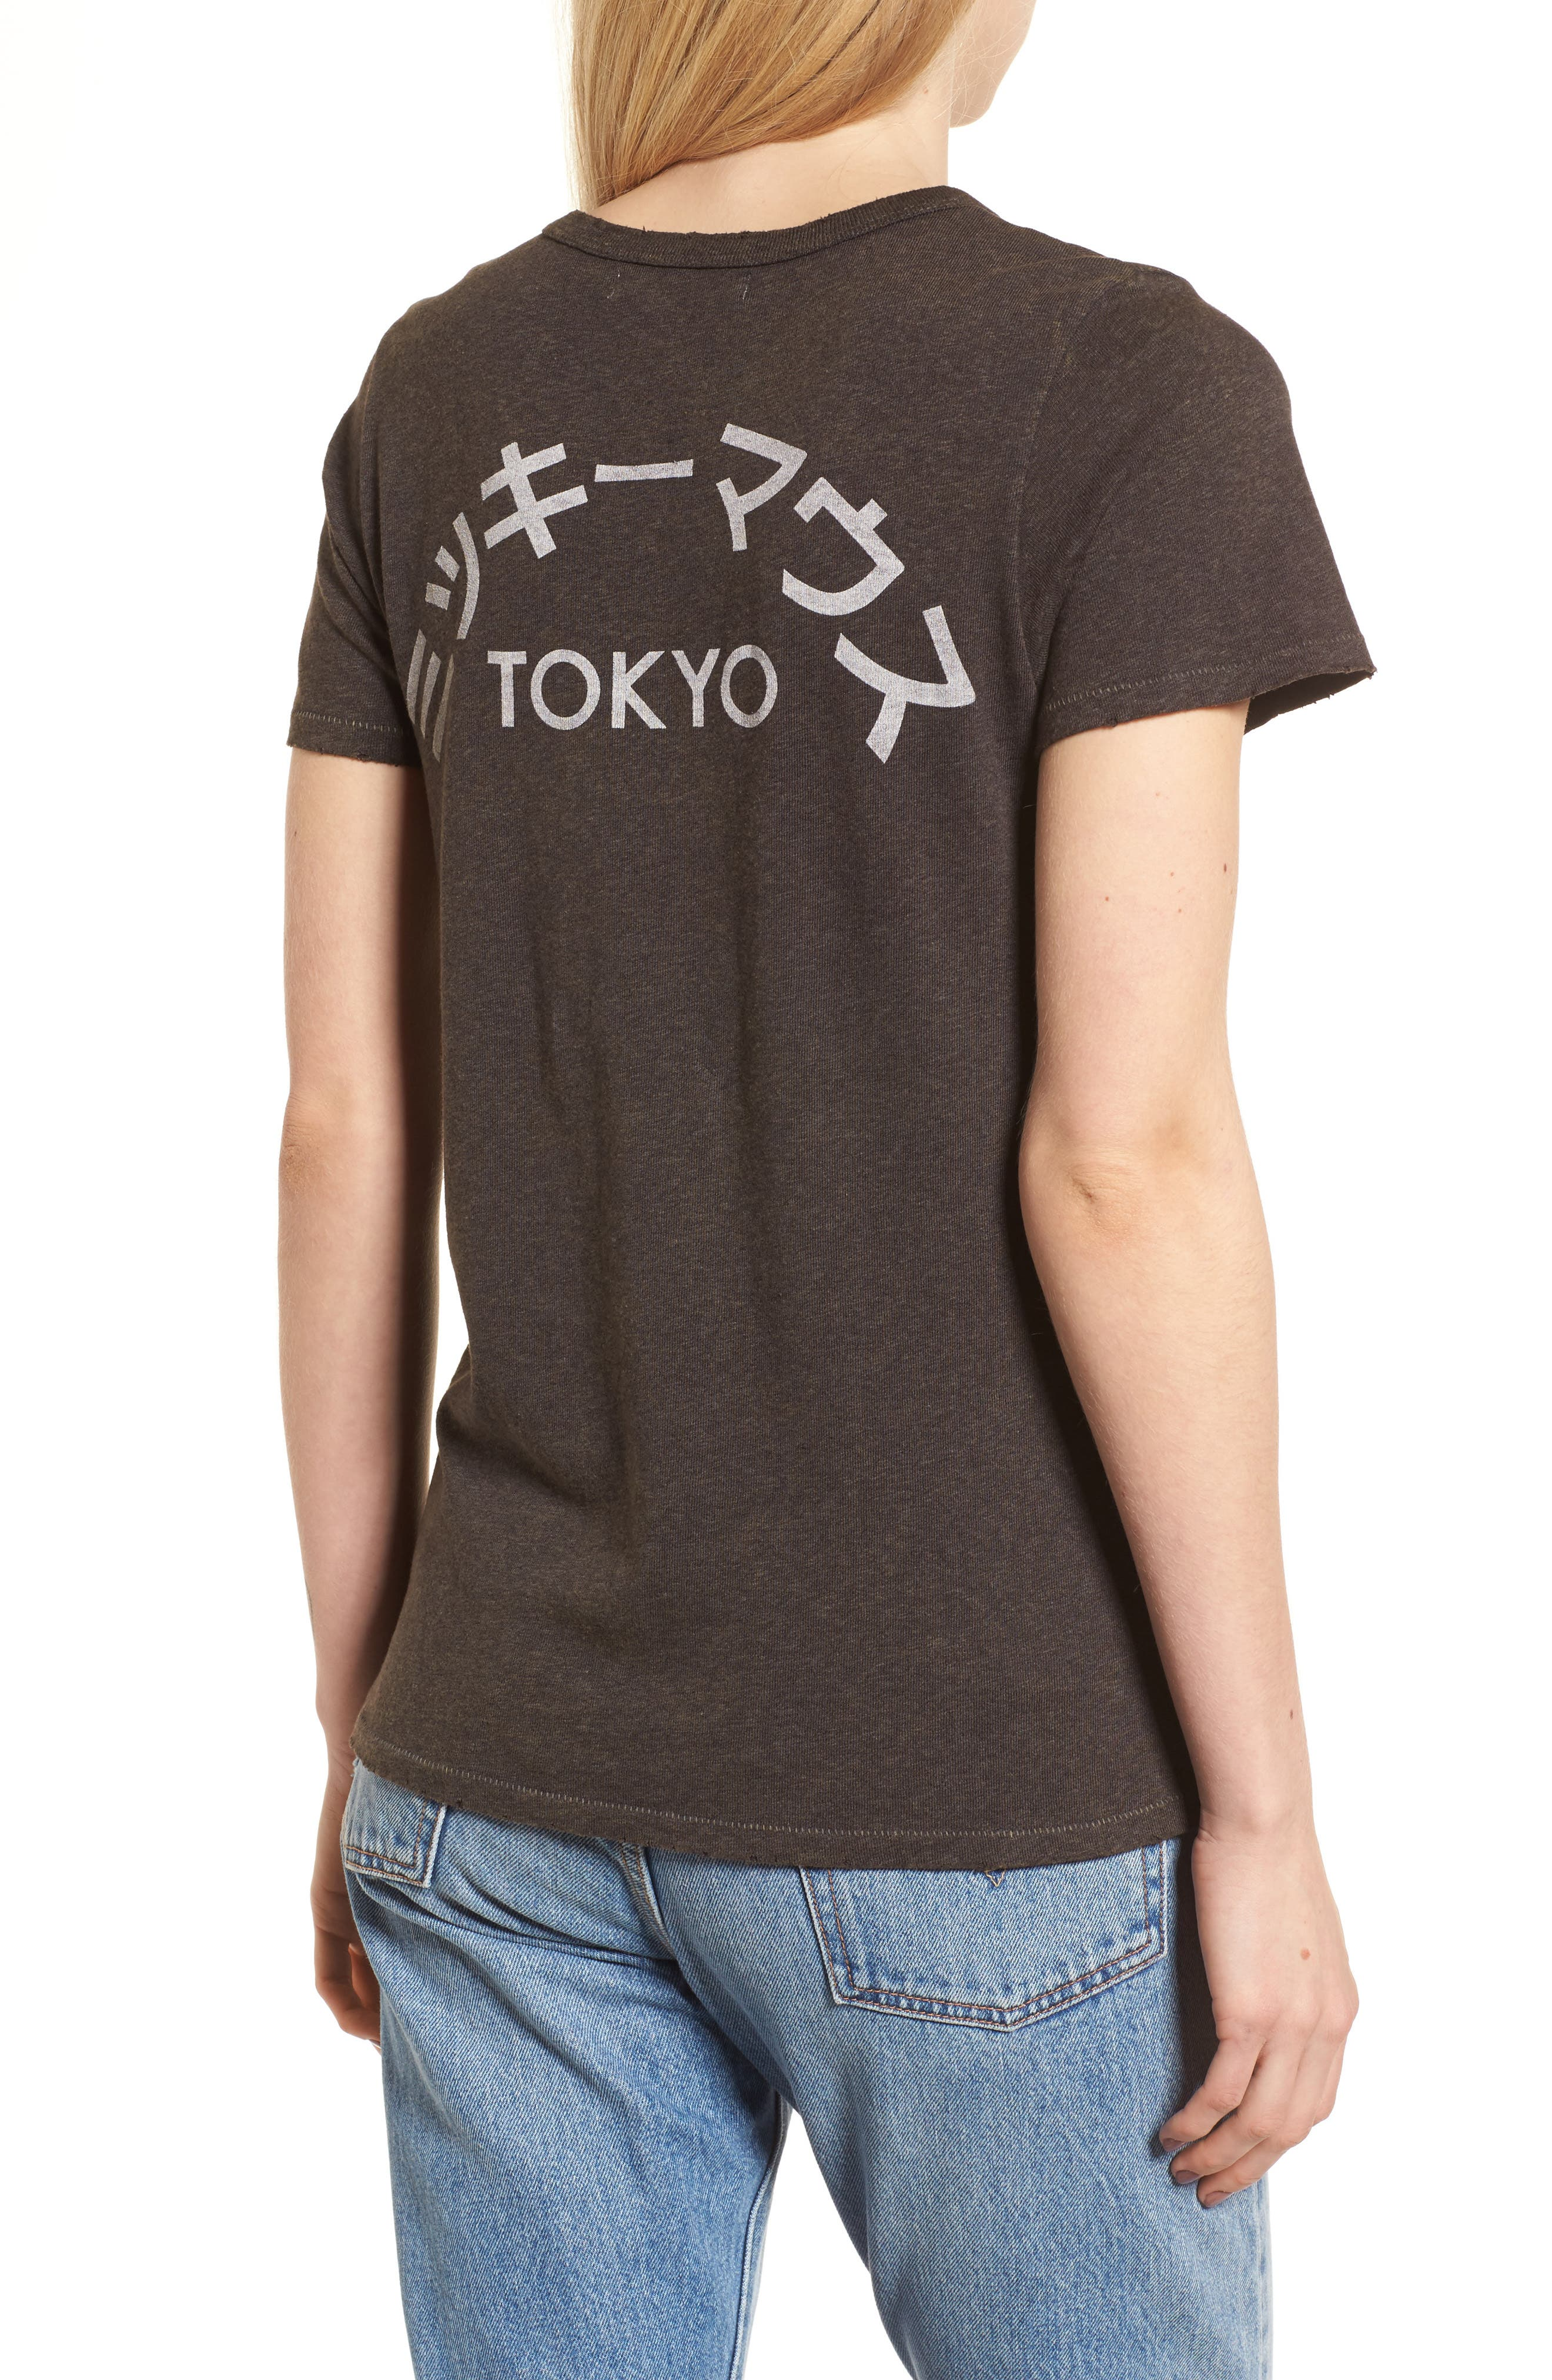 Disney<sup>®</sup> Mickey Mouse - Japan Tee,                             Alternate thumbnail 2, color,                             004